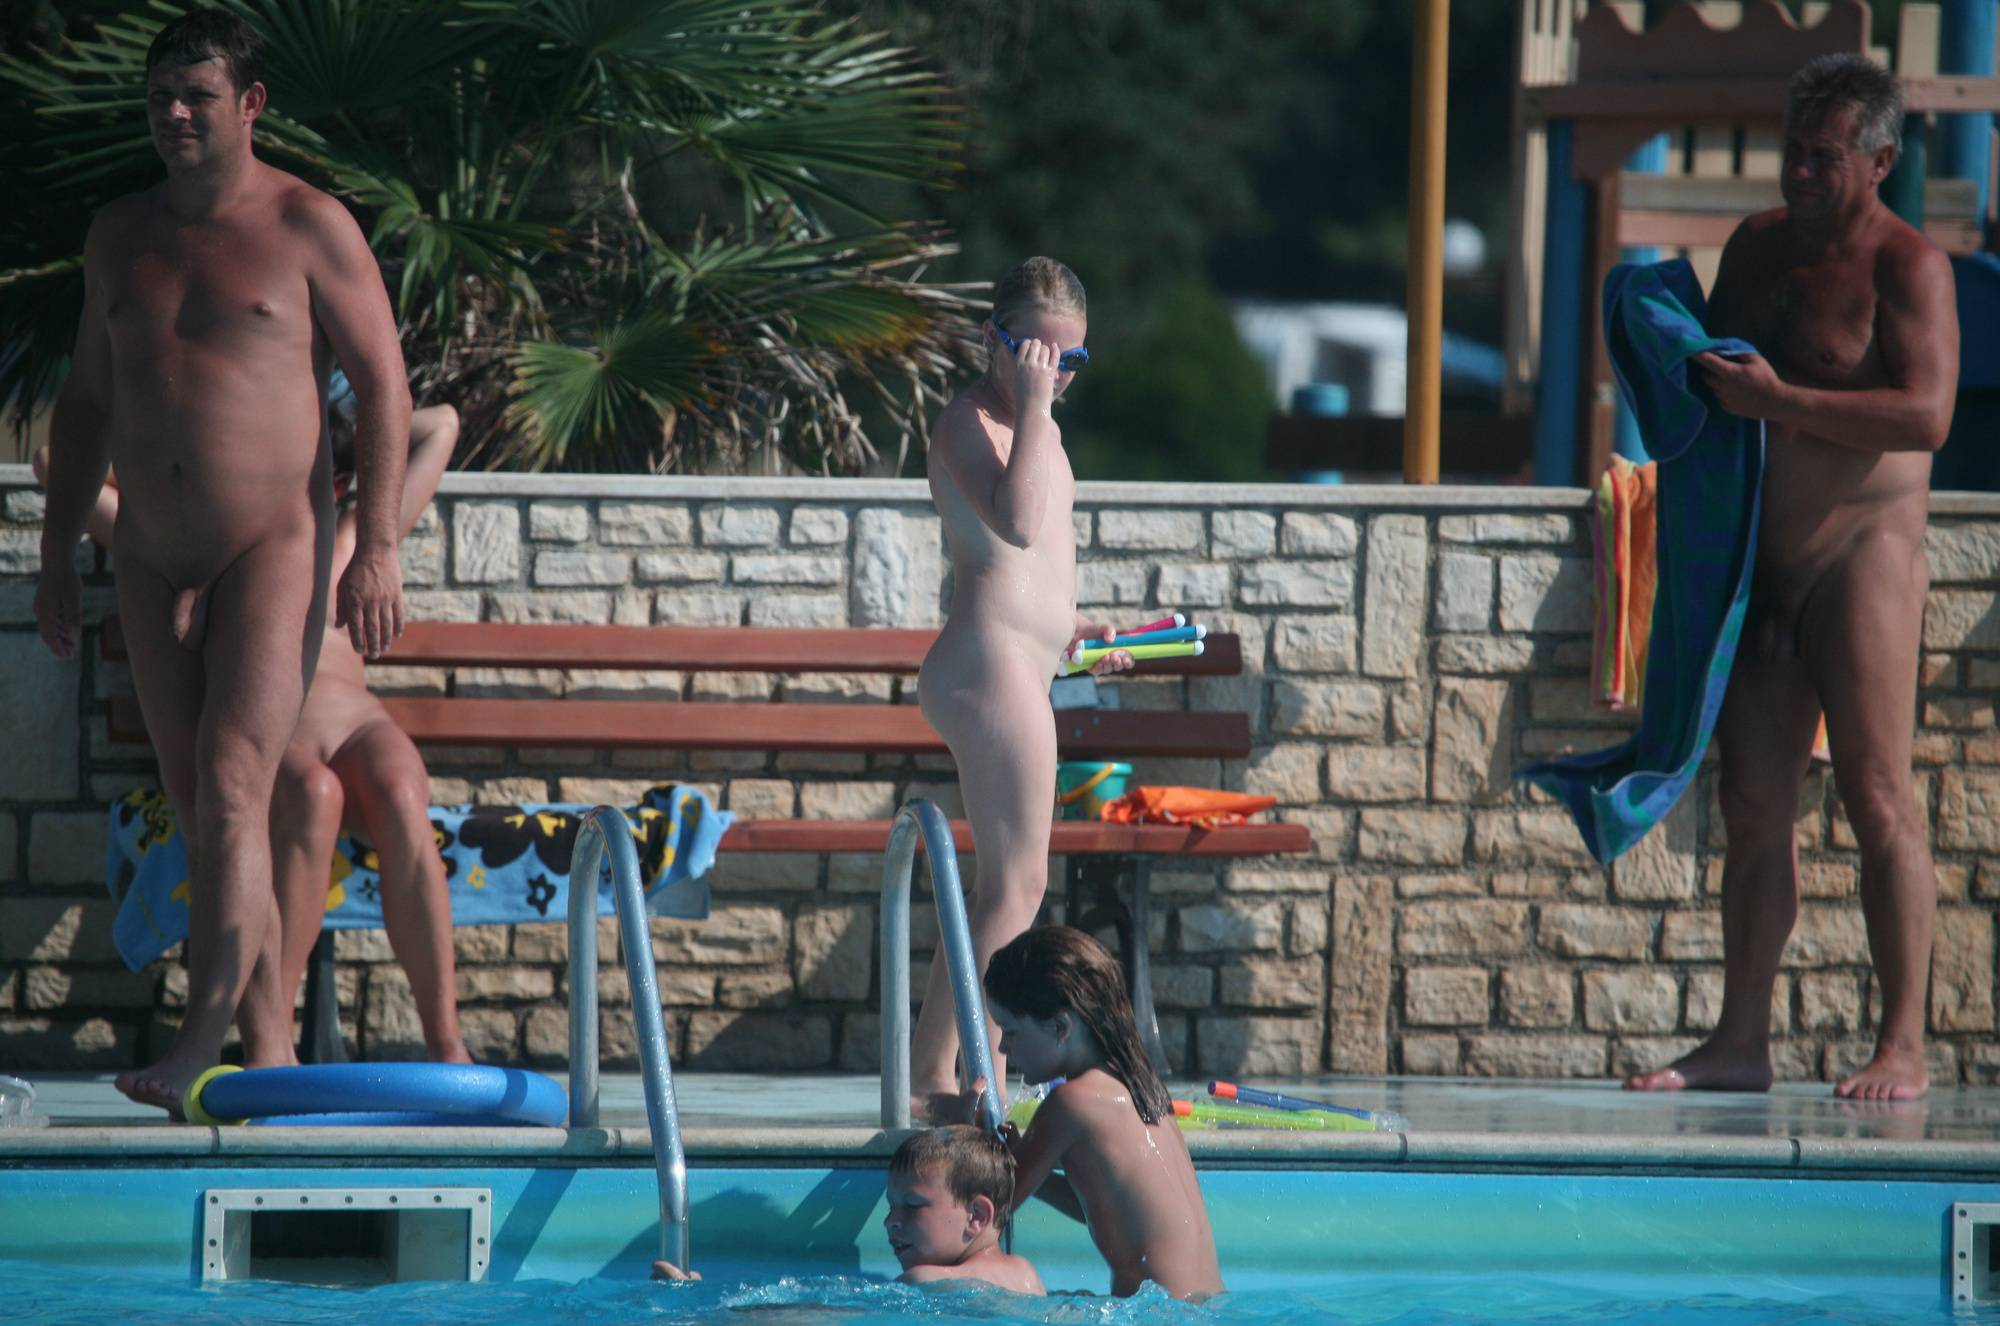 Pure Nudism Gallery Naturist Family Pool Days - 1